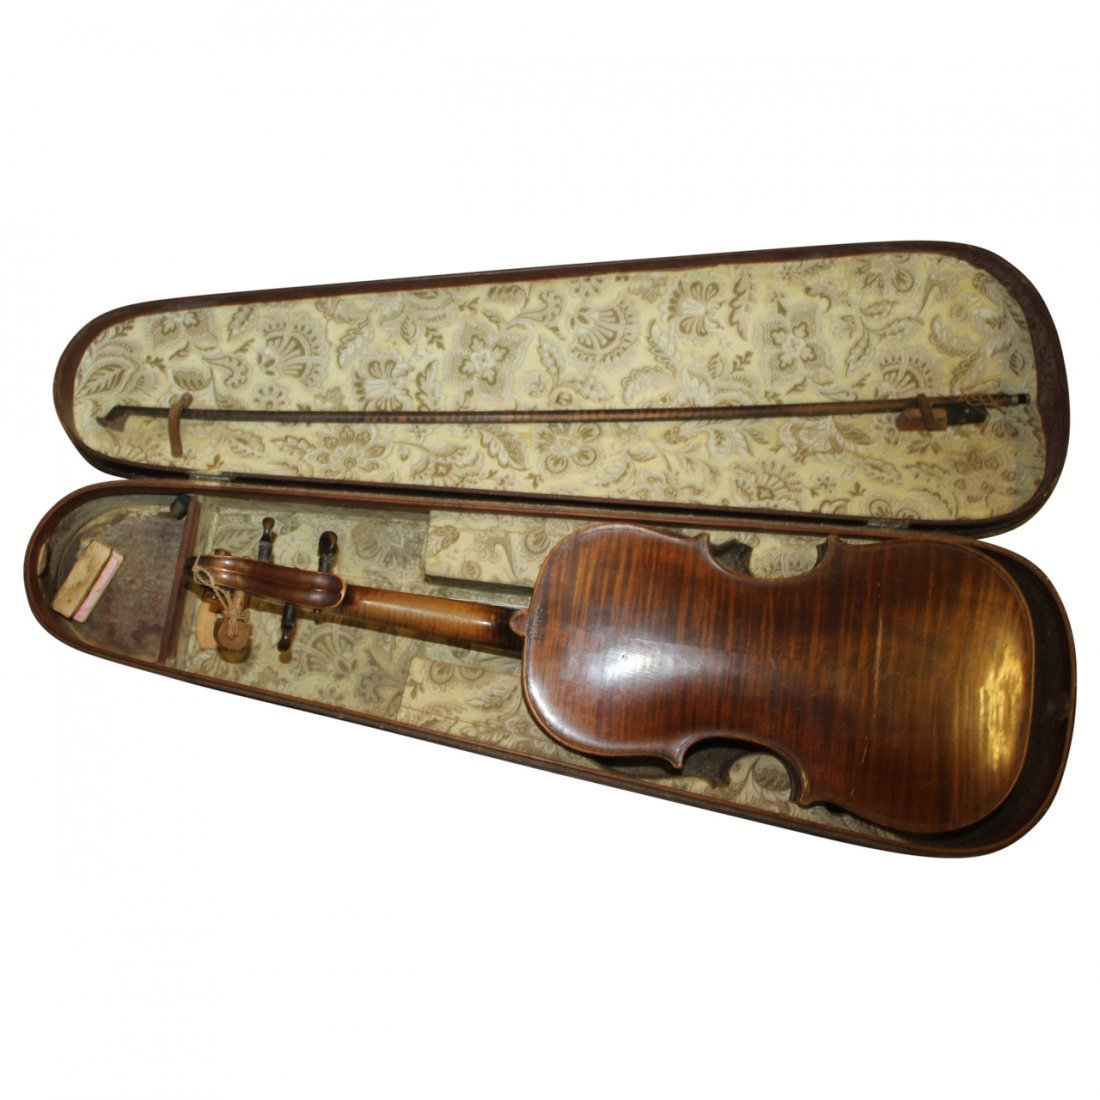 Antique Violin with Wood Fitted Case Signed HOPE - 2